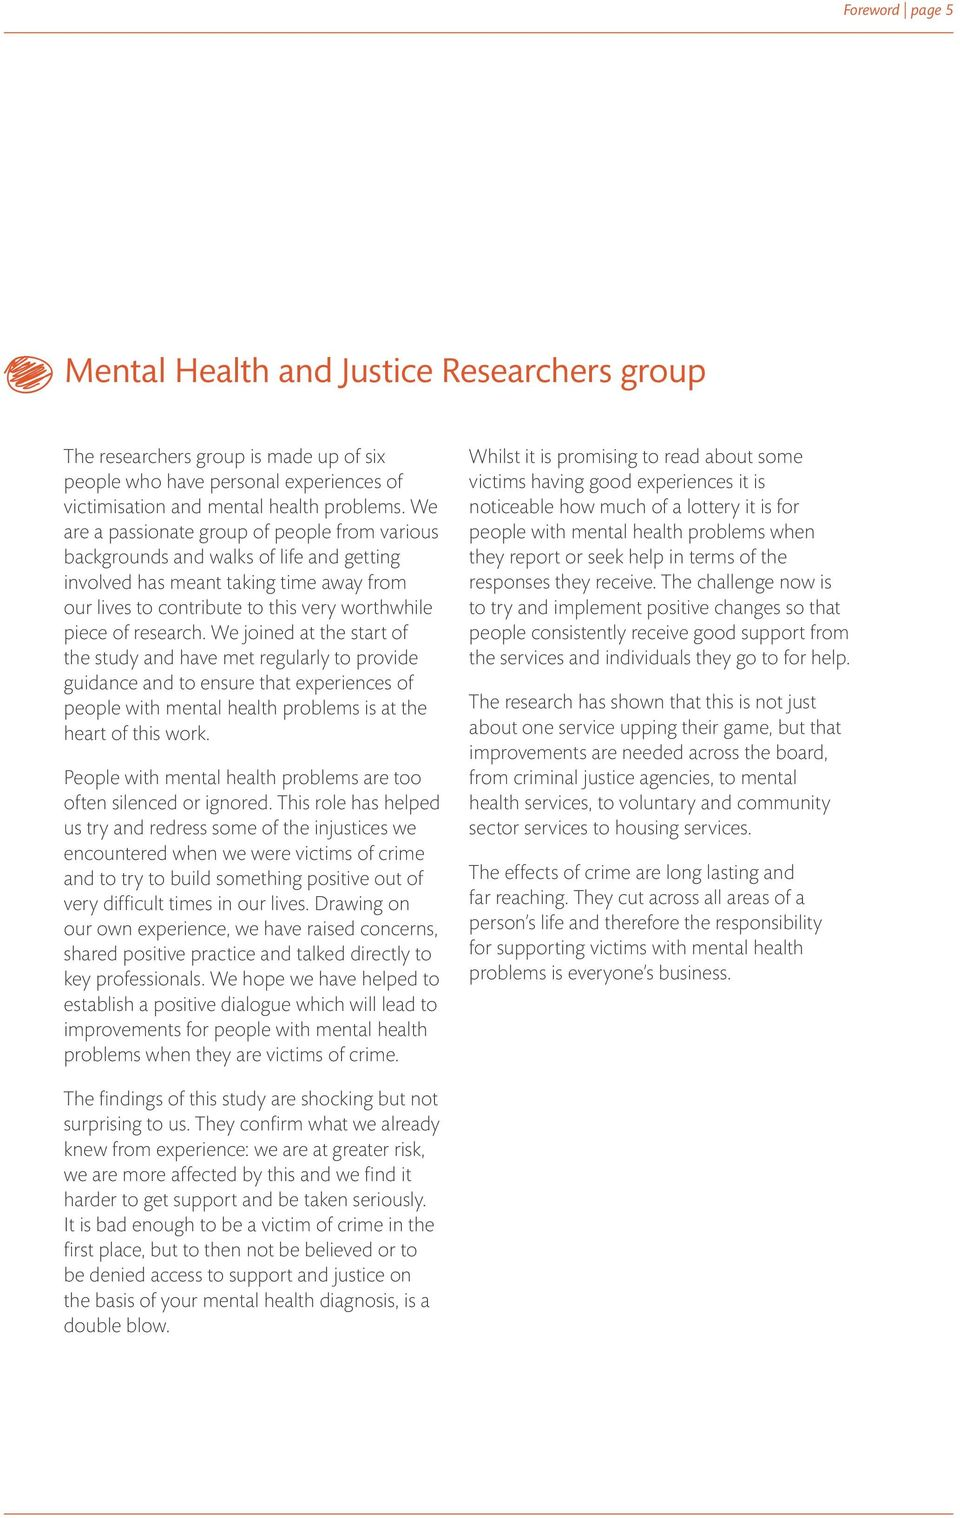 We joined at the start of the study and have met regularly to provide guidance and to ensure that experiences of people with mental health problems is at the heart of this work.